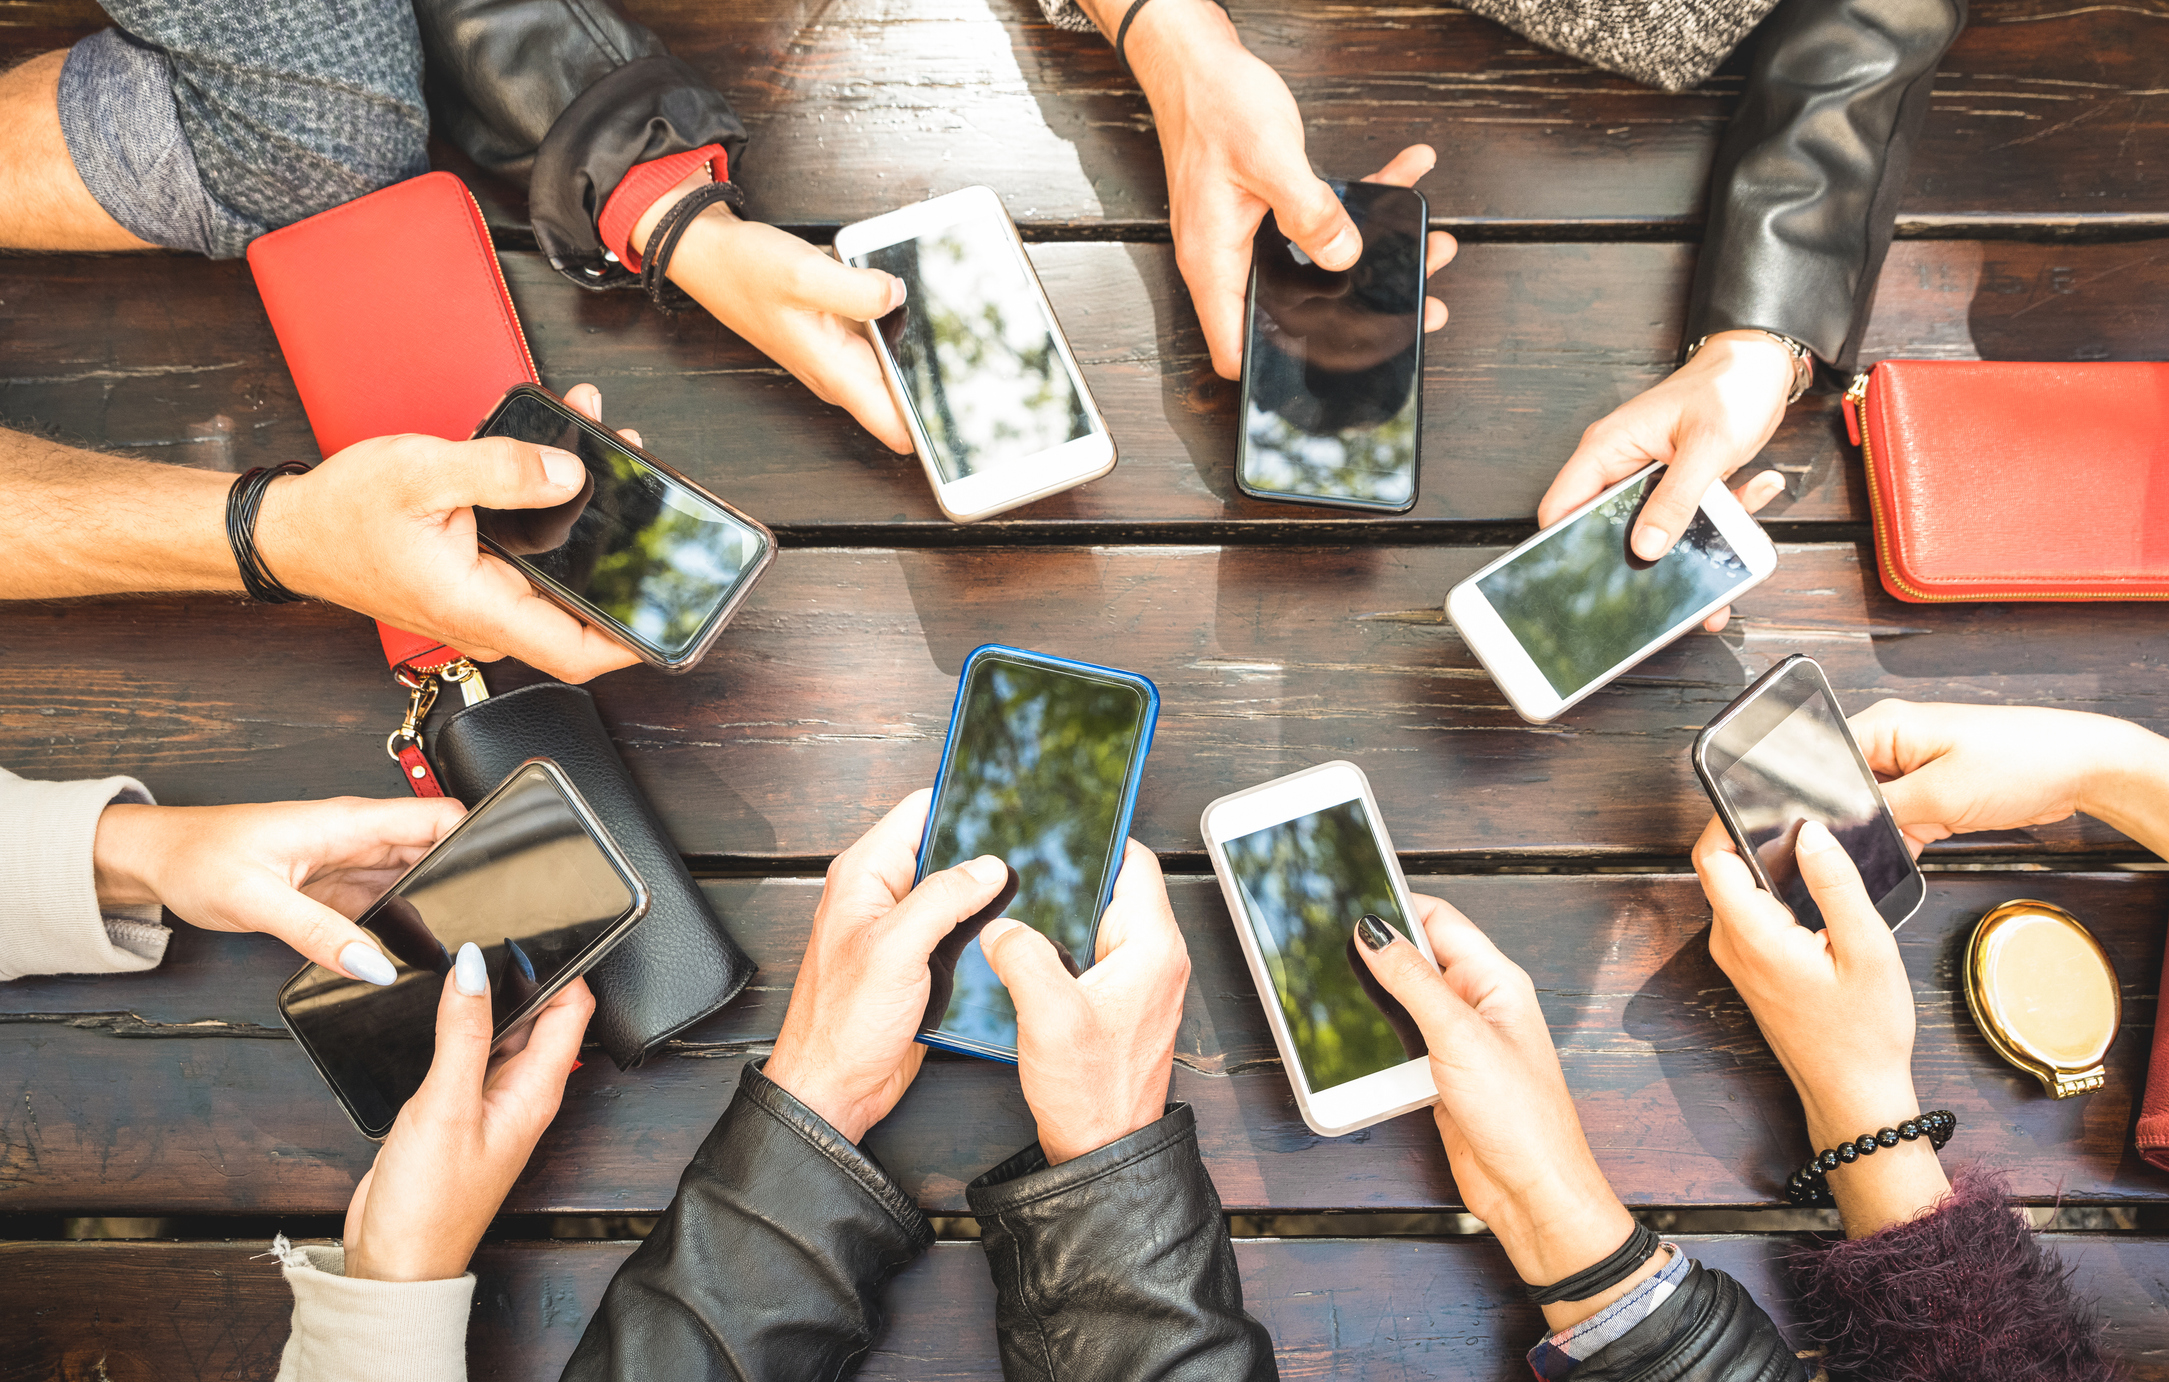 friends-on-mobile-devices-iStock-952414660